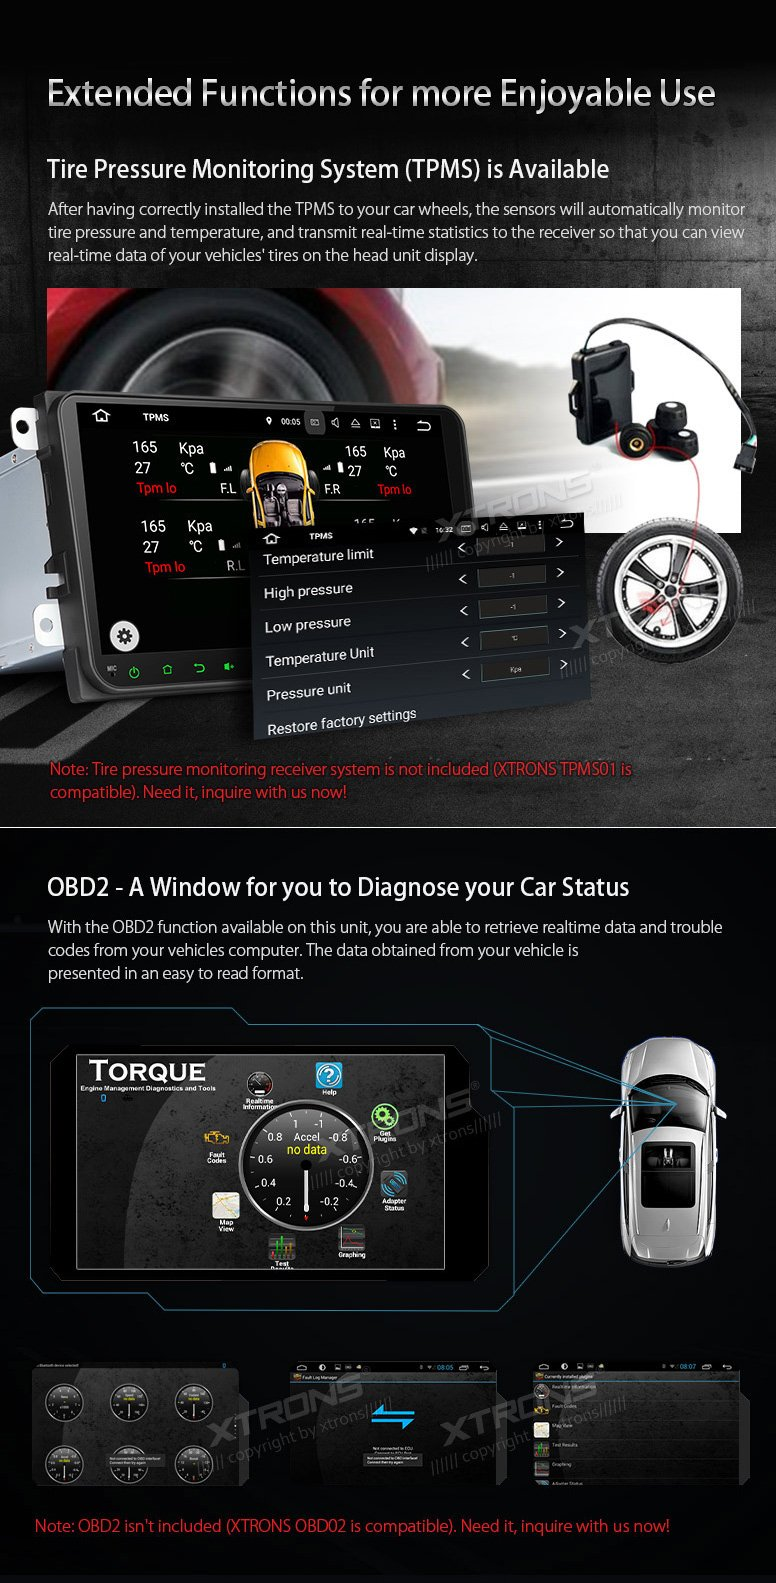 XTRONS Android 6.0 Octa-Core 9 Inch Capacitive Touch Screen Car Stereo Radio DVD Player Screen Mirroring Function OBD2 Tire Pressure Monitoring for VW Caddy Golf 2003-2013 Reversing Camera Included by XTRONS (Image #7)